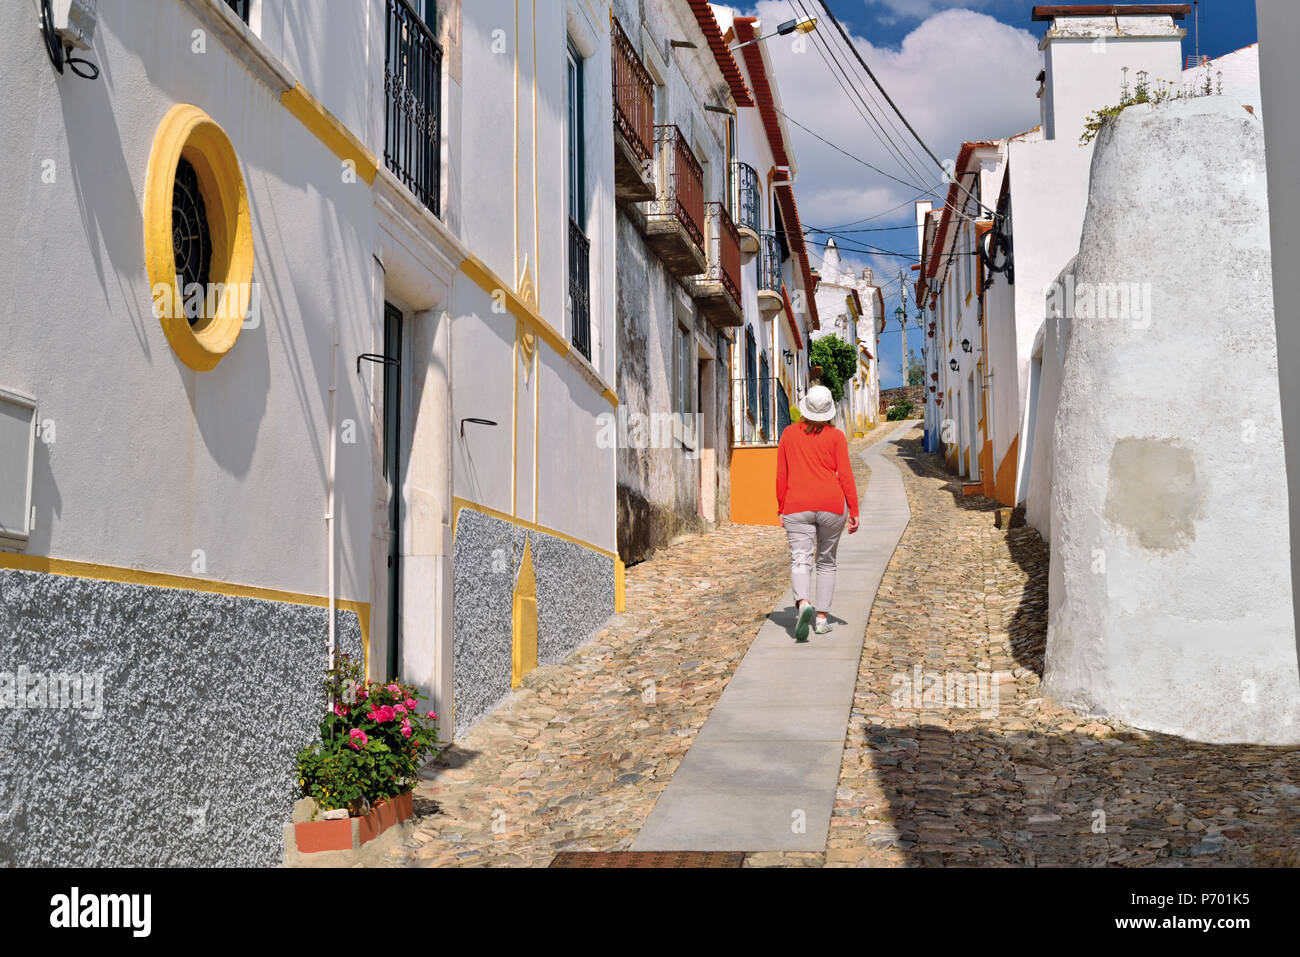 Woman with red pullover walking along small cobble stone alley inbetween medieval white washed houses - Stock Image